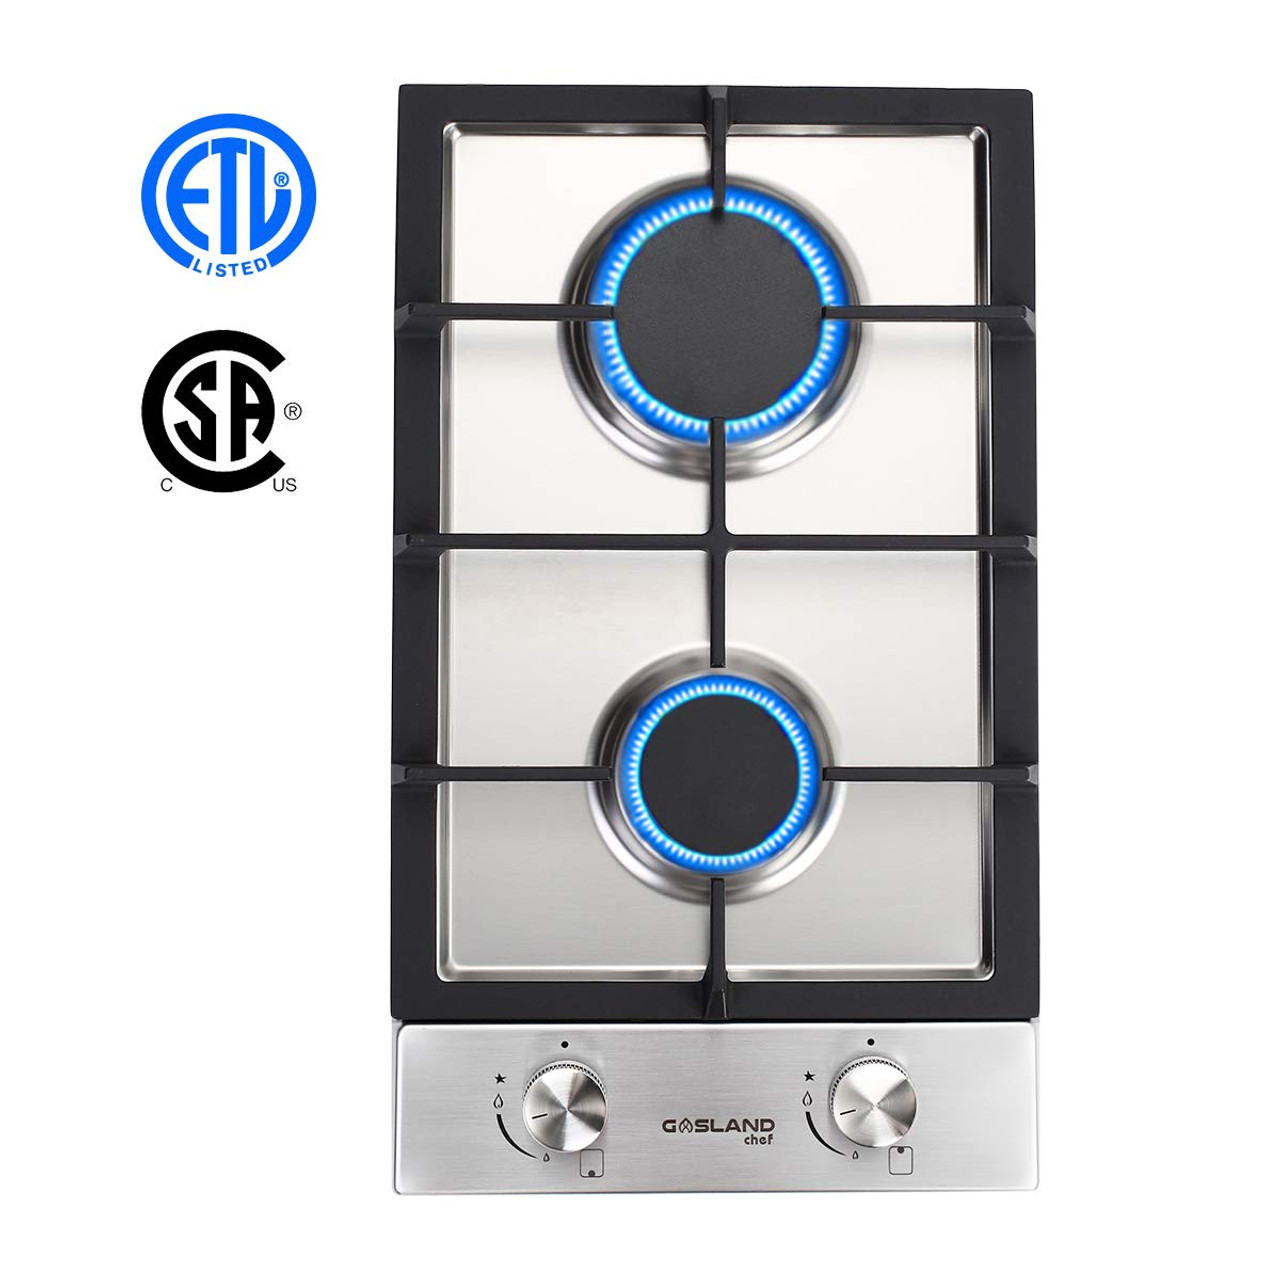 Thermocouple Protection /& Easy To Clean Gasland chef GH30BF 12 Built-in Gas Stove Top Gas Cooktop Gas Stove Top with 2 Sealed Burners ETL Safety Certified Tempered Glass LPG Natural Gas Cooktop